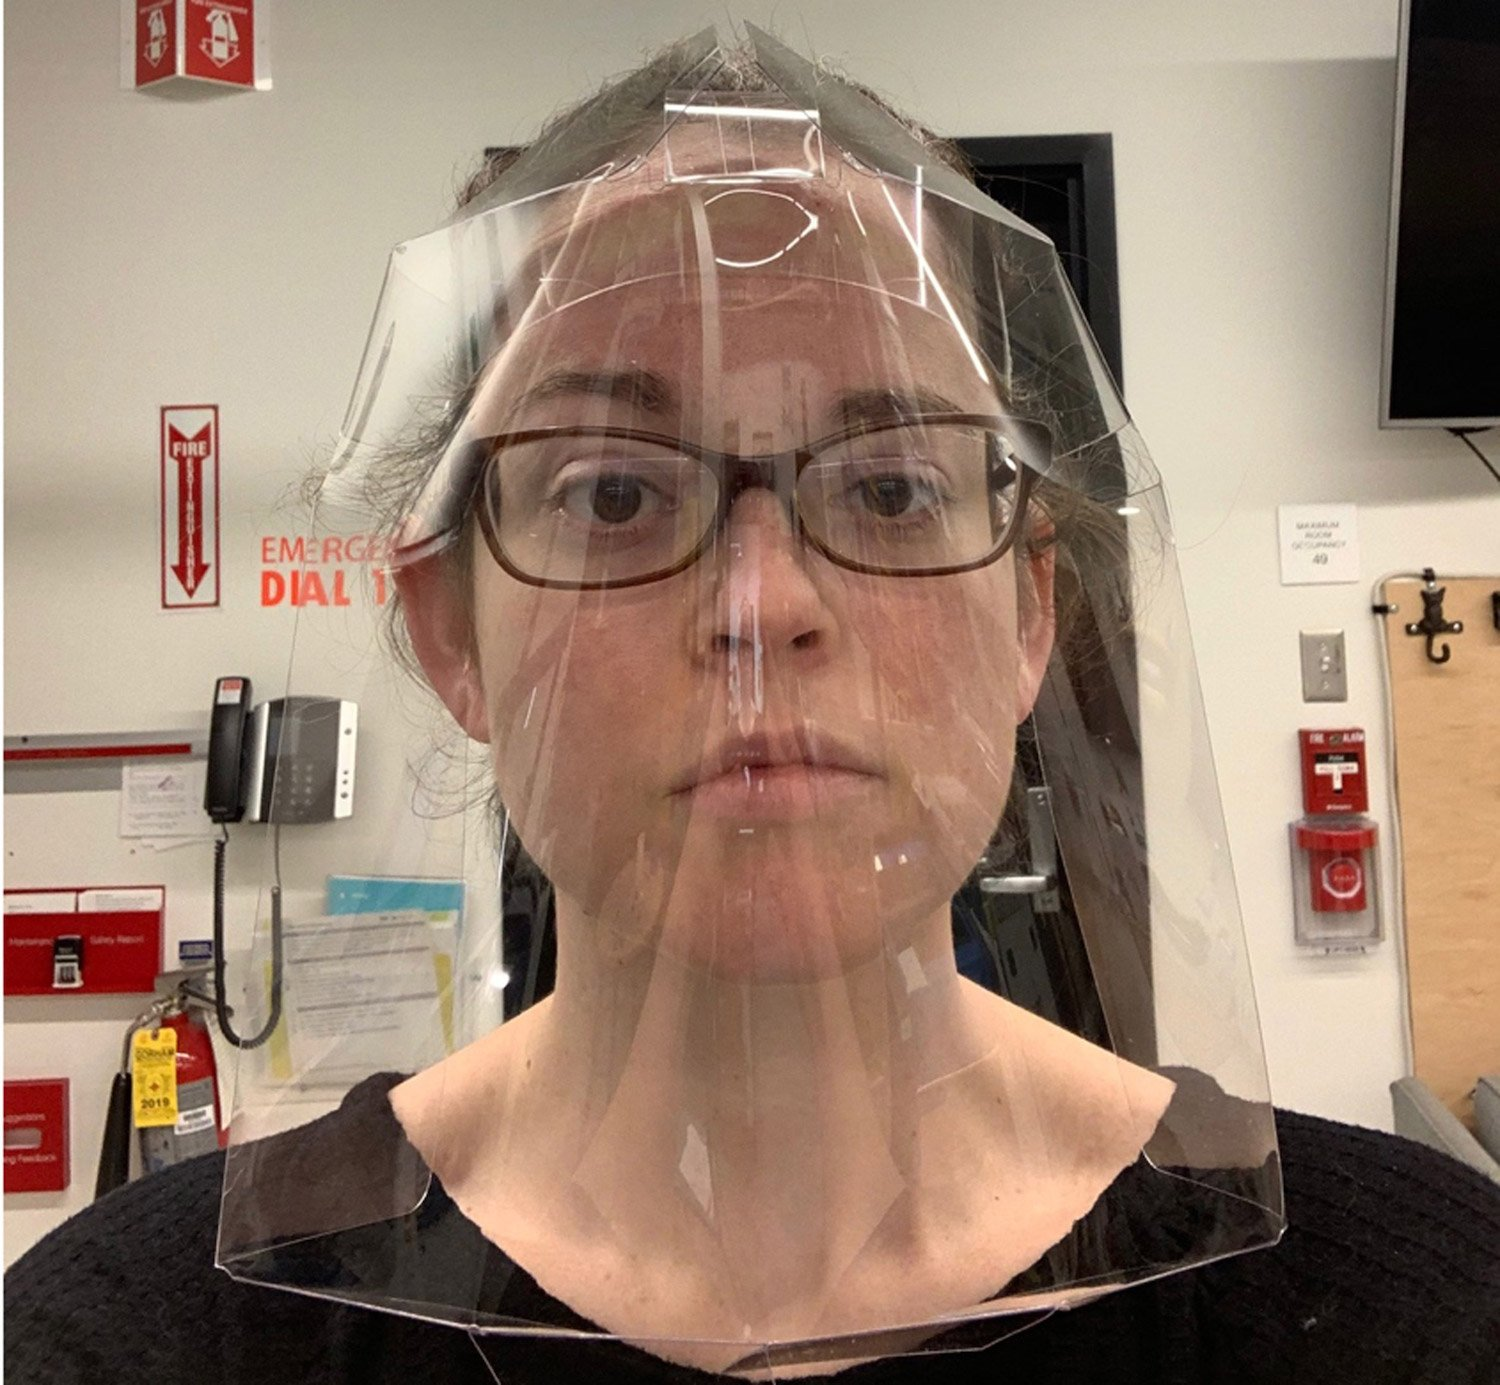 MIT'S disposable single piece face shields design - Photo by Project Manus, courtesy of MIT.